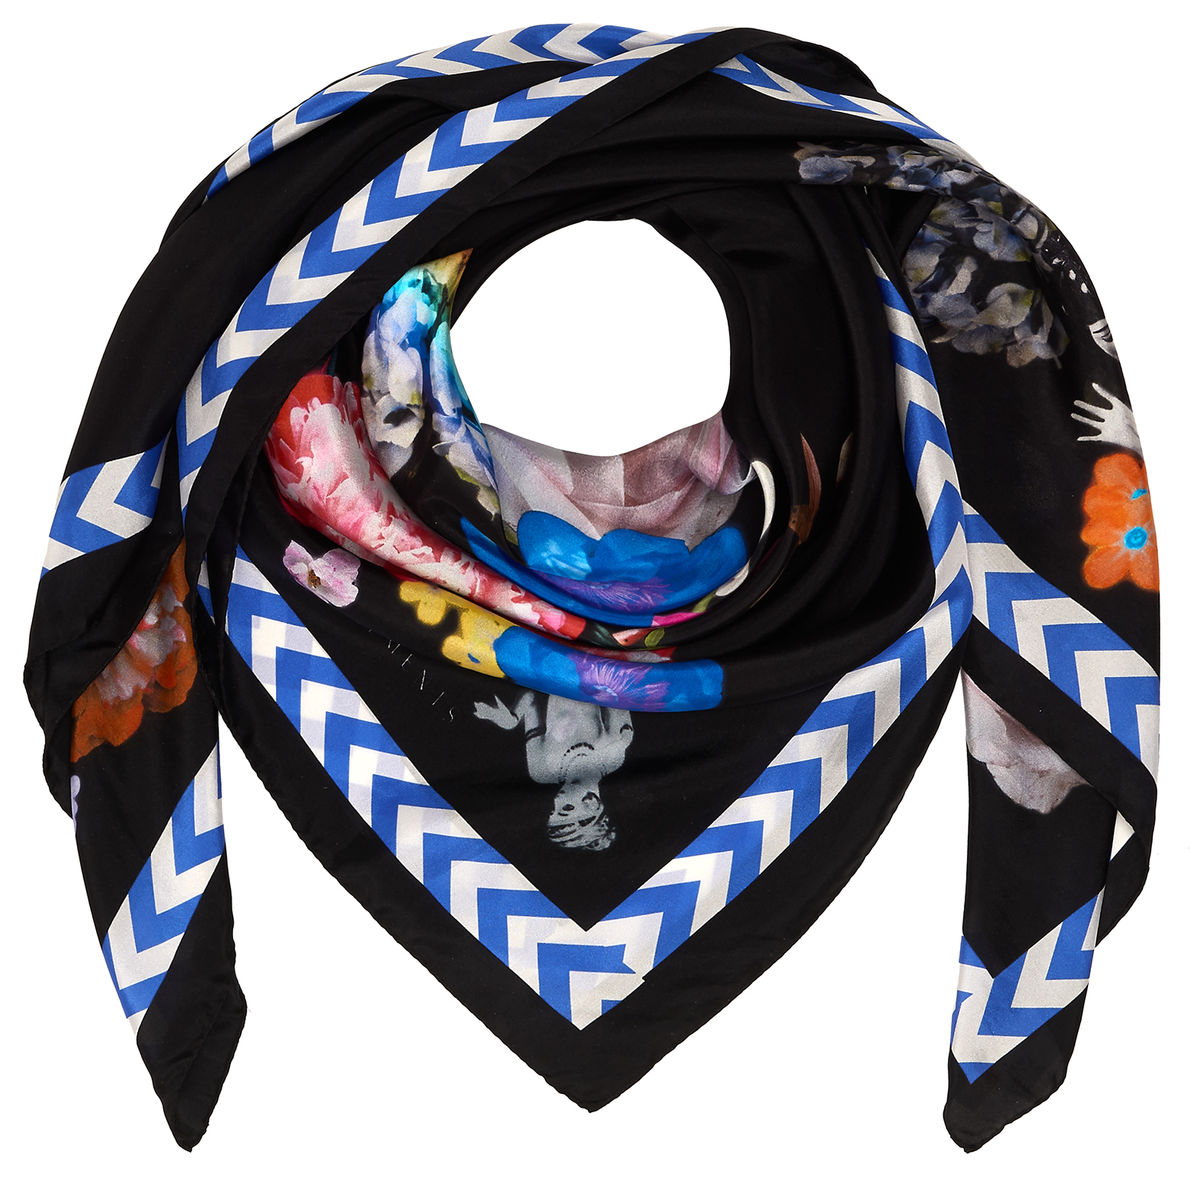 INBLOOM SQUARE SCARF - product images  of